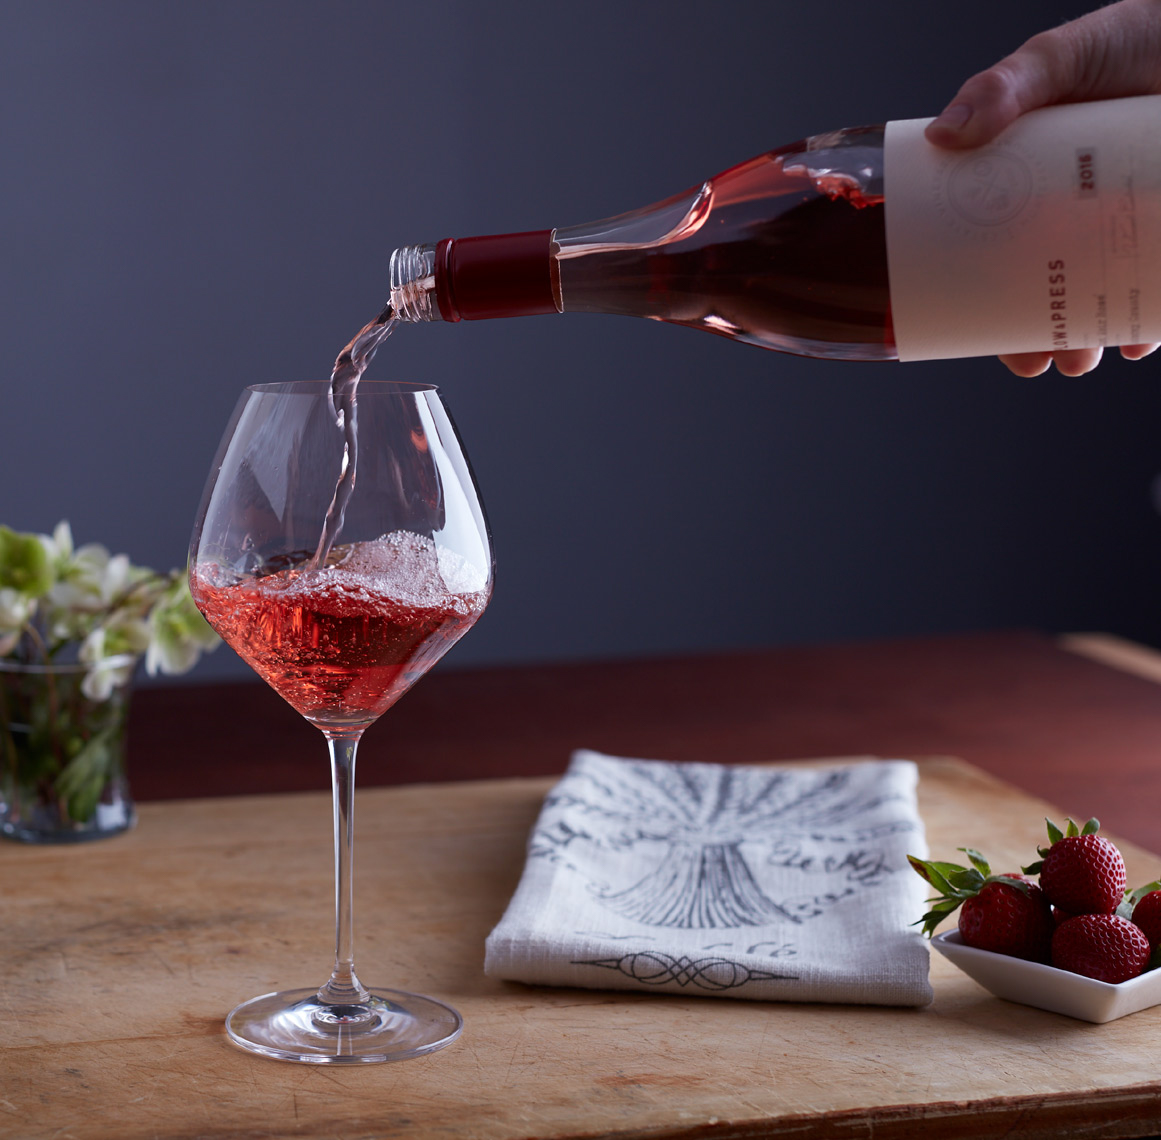 bottle pouring rose wine into a glass with strawberries and a dish towel